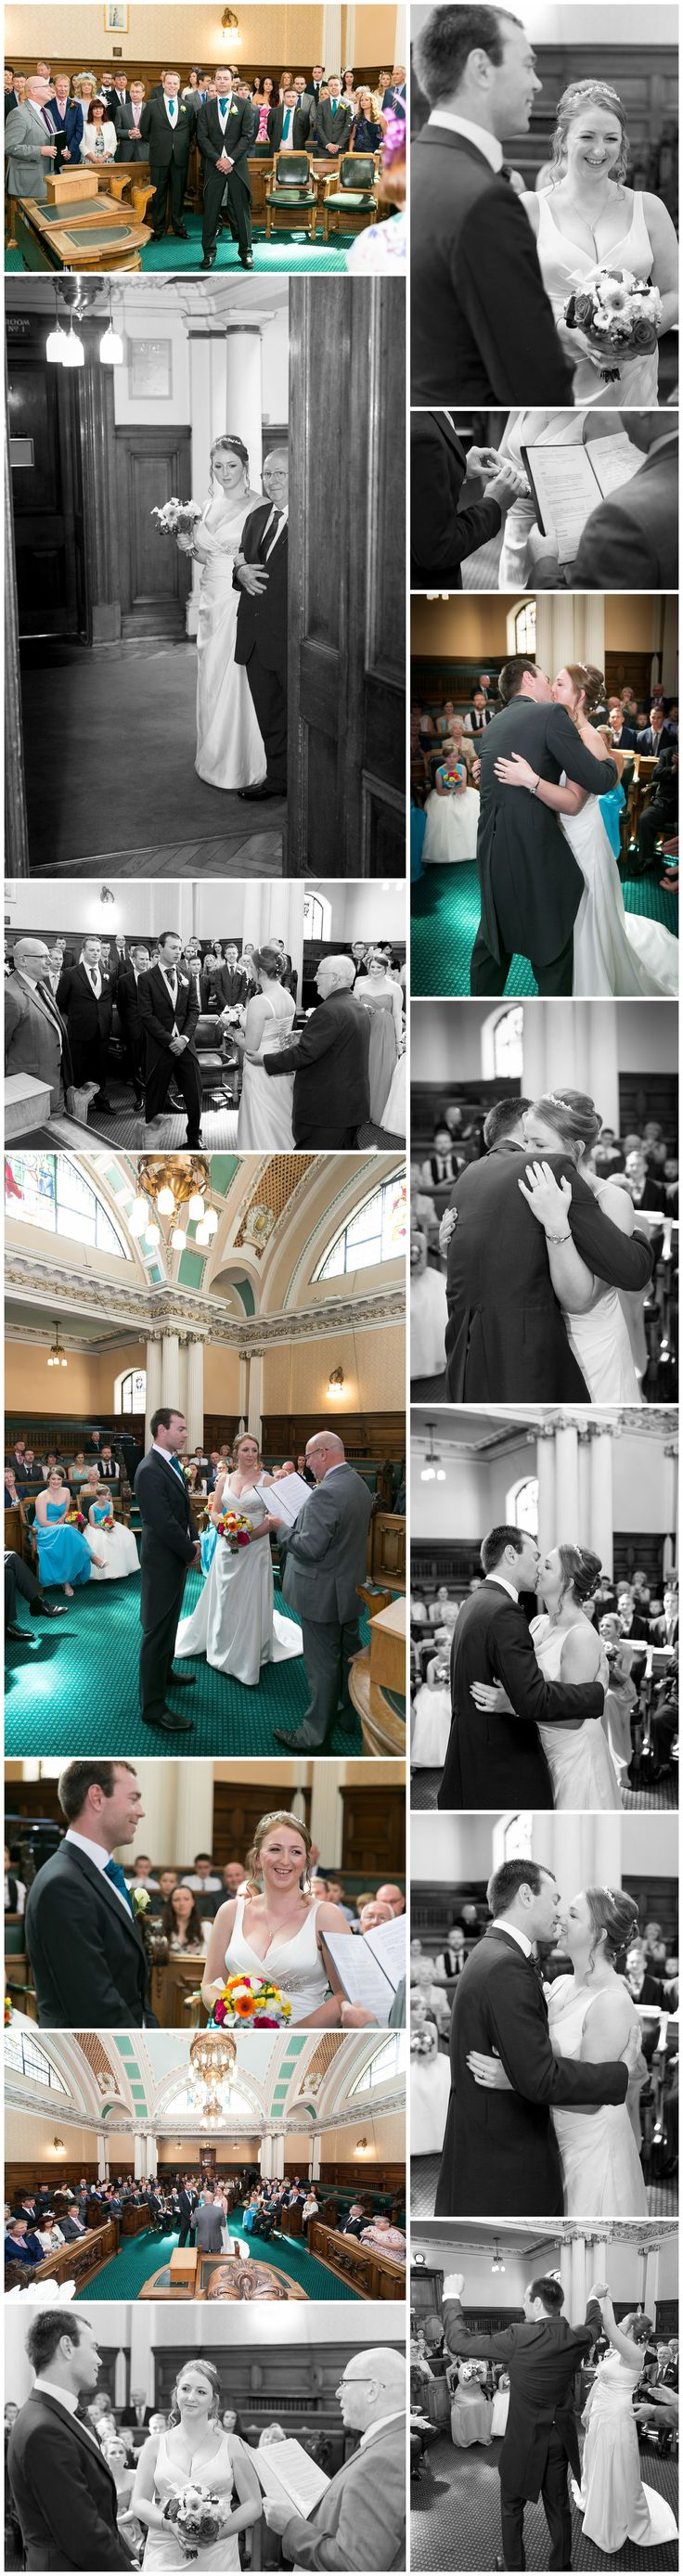 The wedding ceremony at Stockport Town Hall